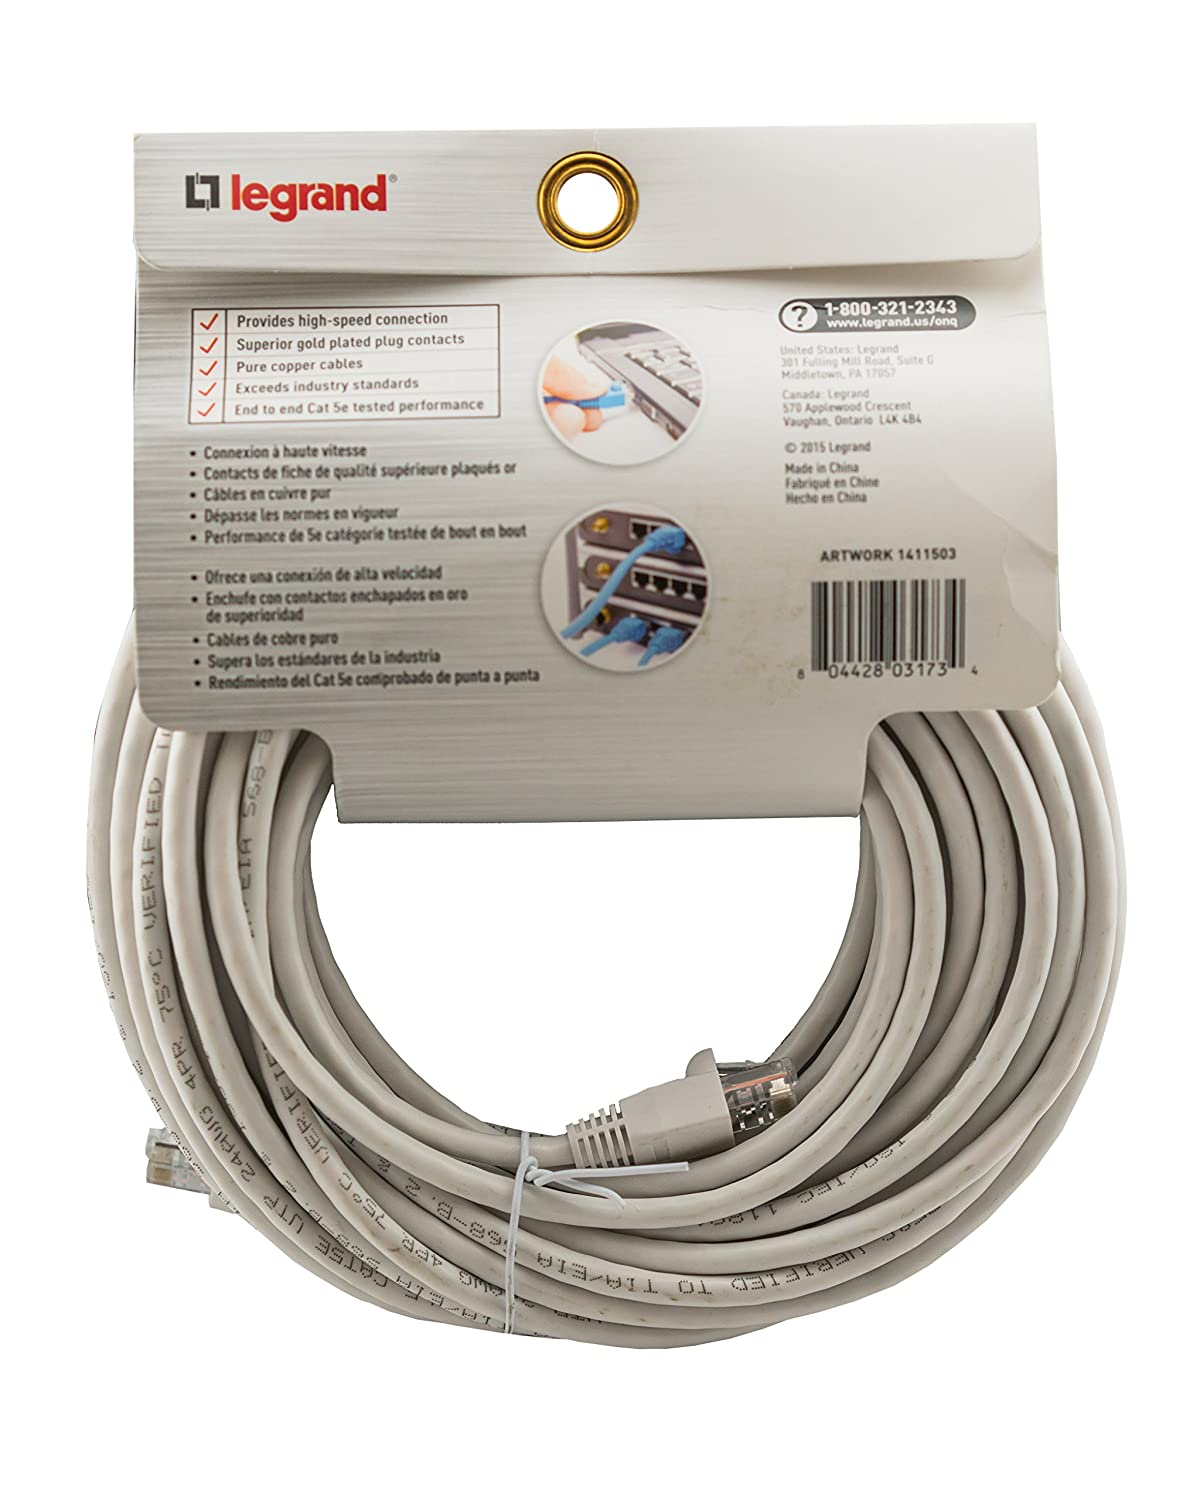 Legrand - On-Q CAT 5e Patch Cable, 10Gbps Ethernet Speed, Computer Networking Cord/Data Cable, 50-foot, AC3550WHV1 - Electrical Wires - Amazon.com